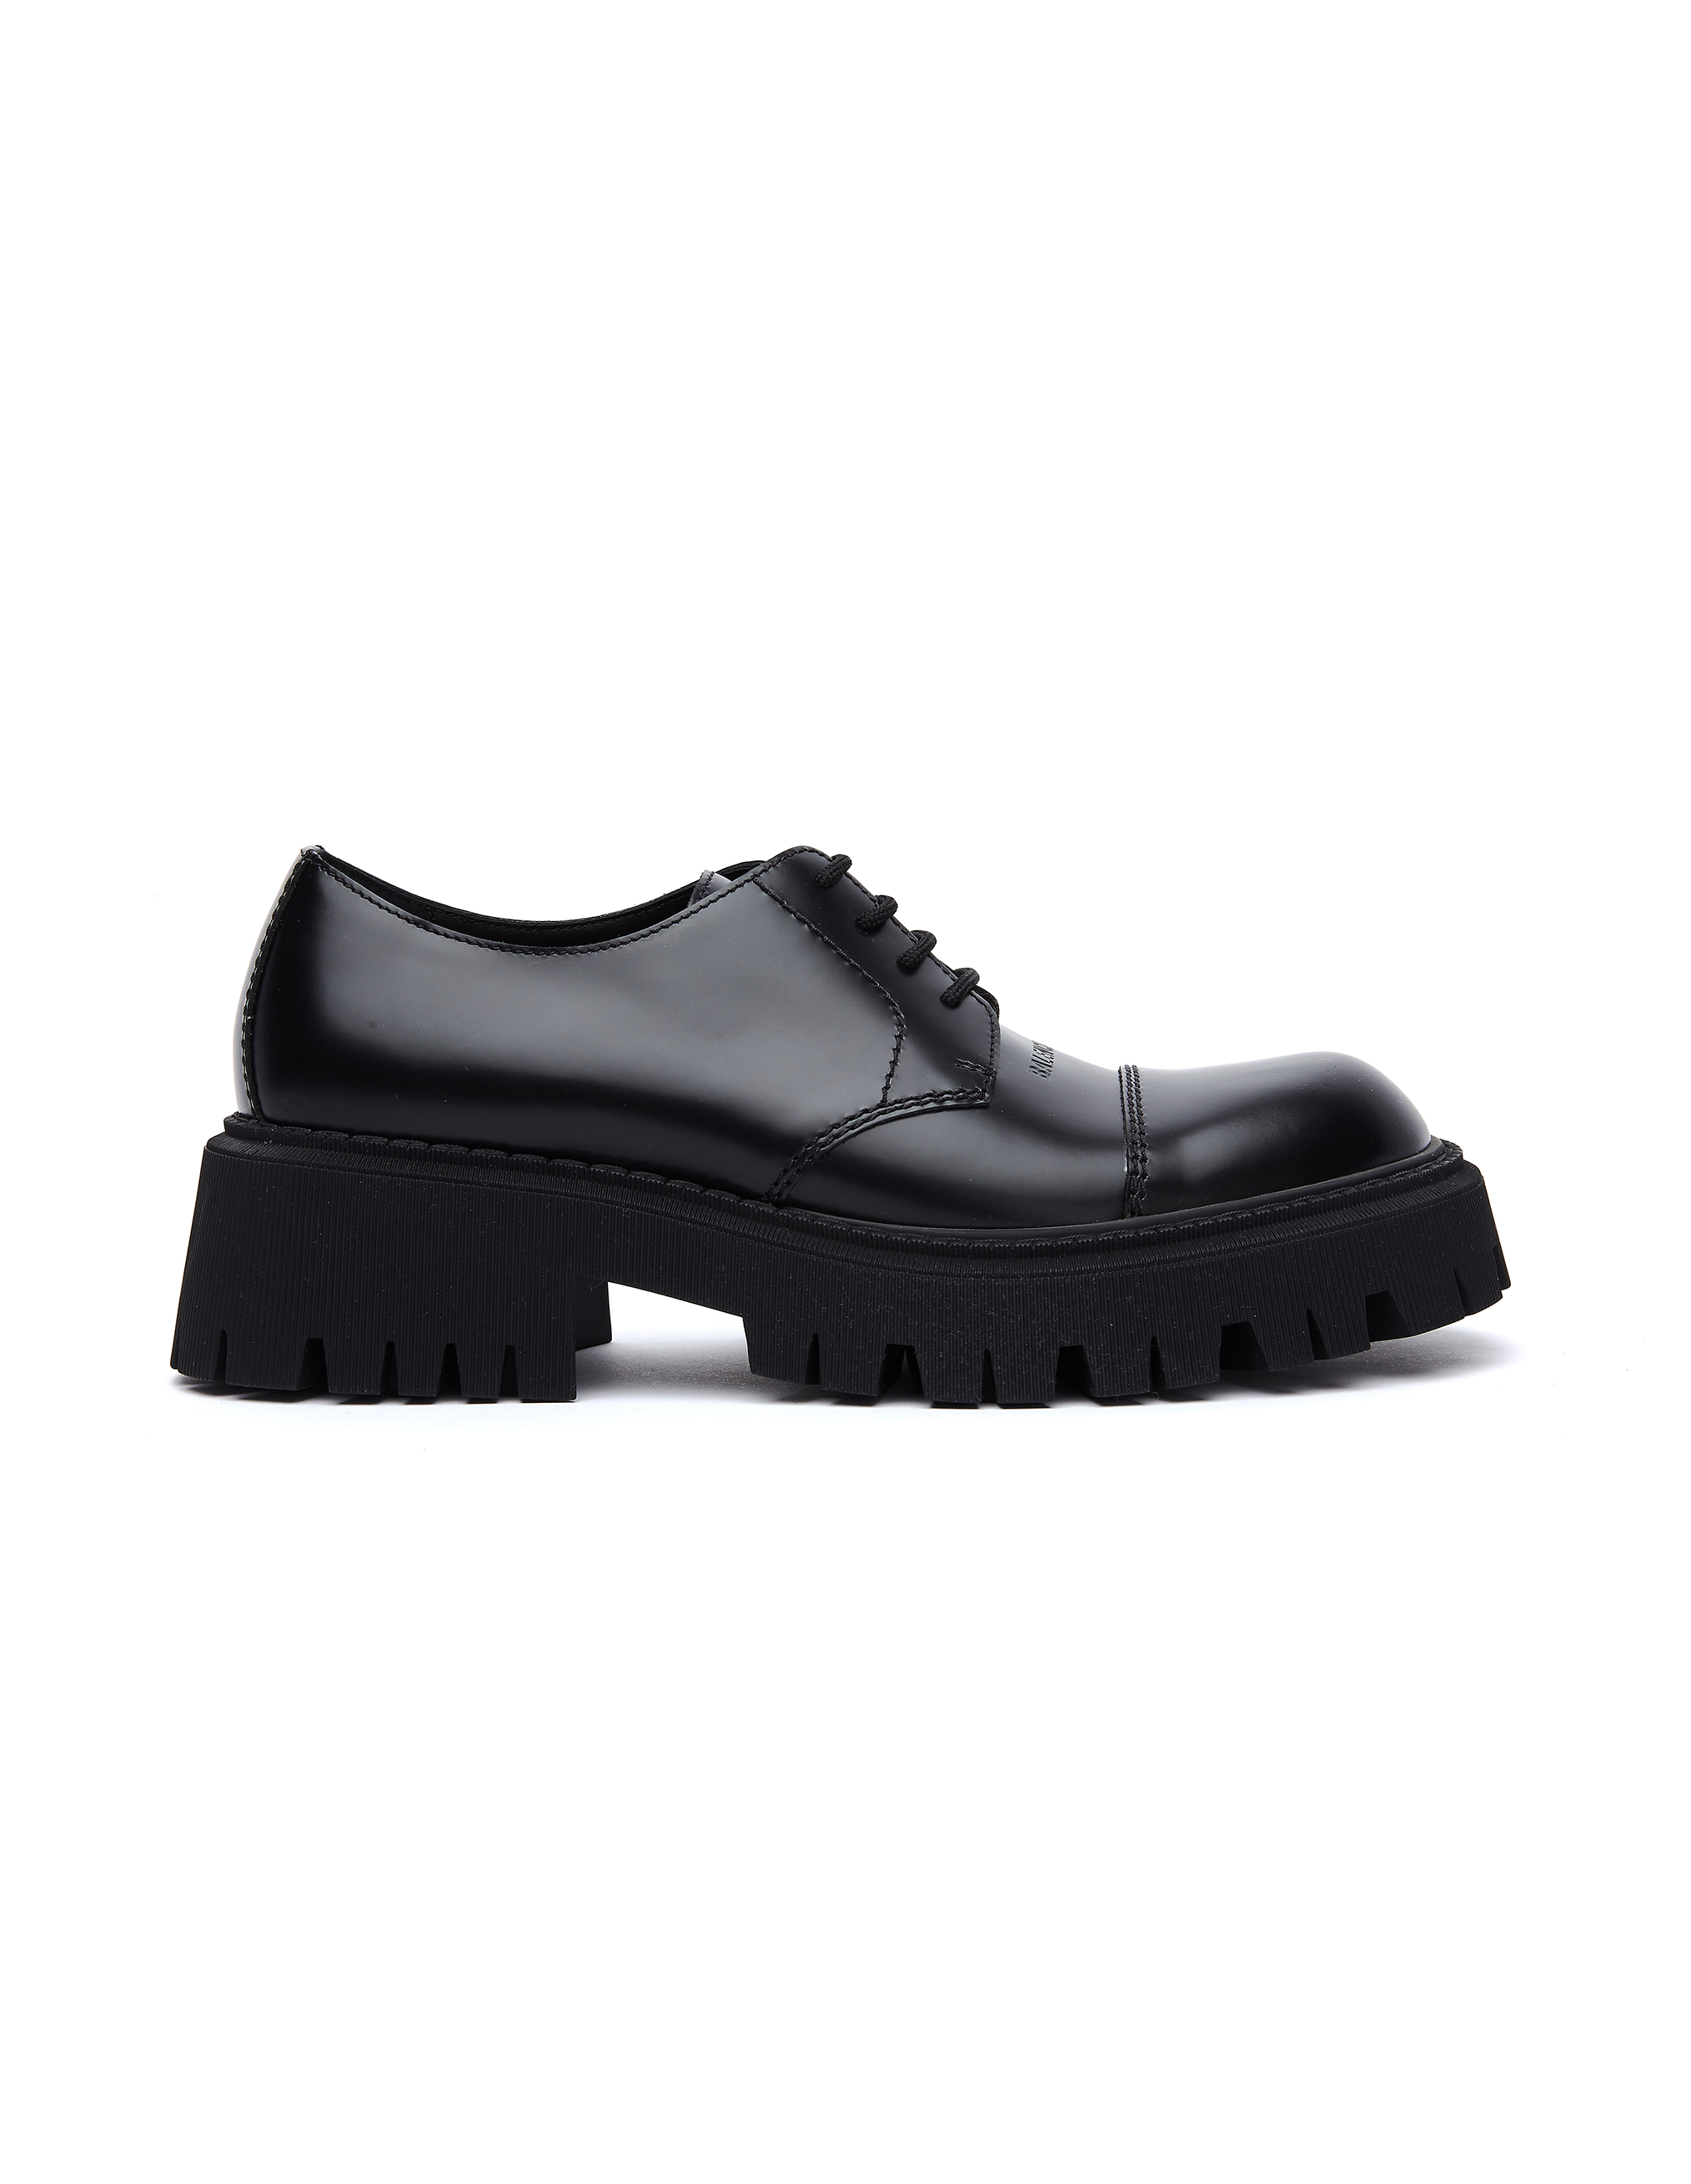 Balenciaga Black Leather Tractor Derbies